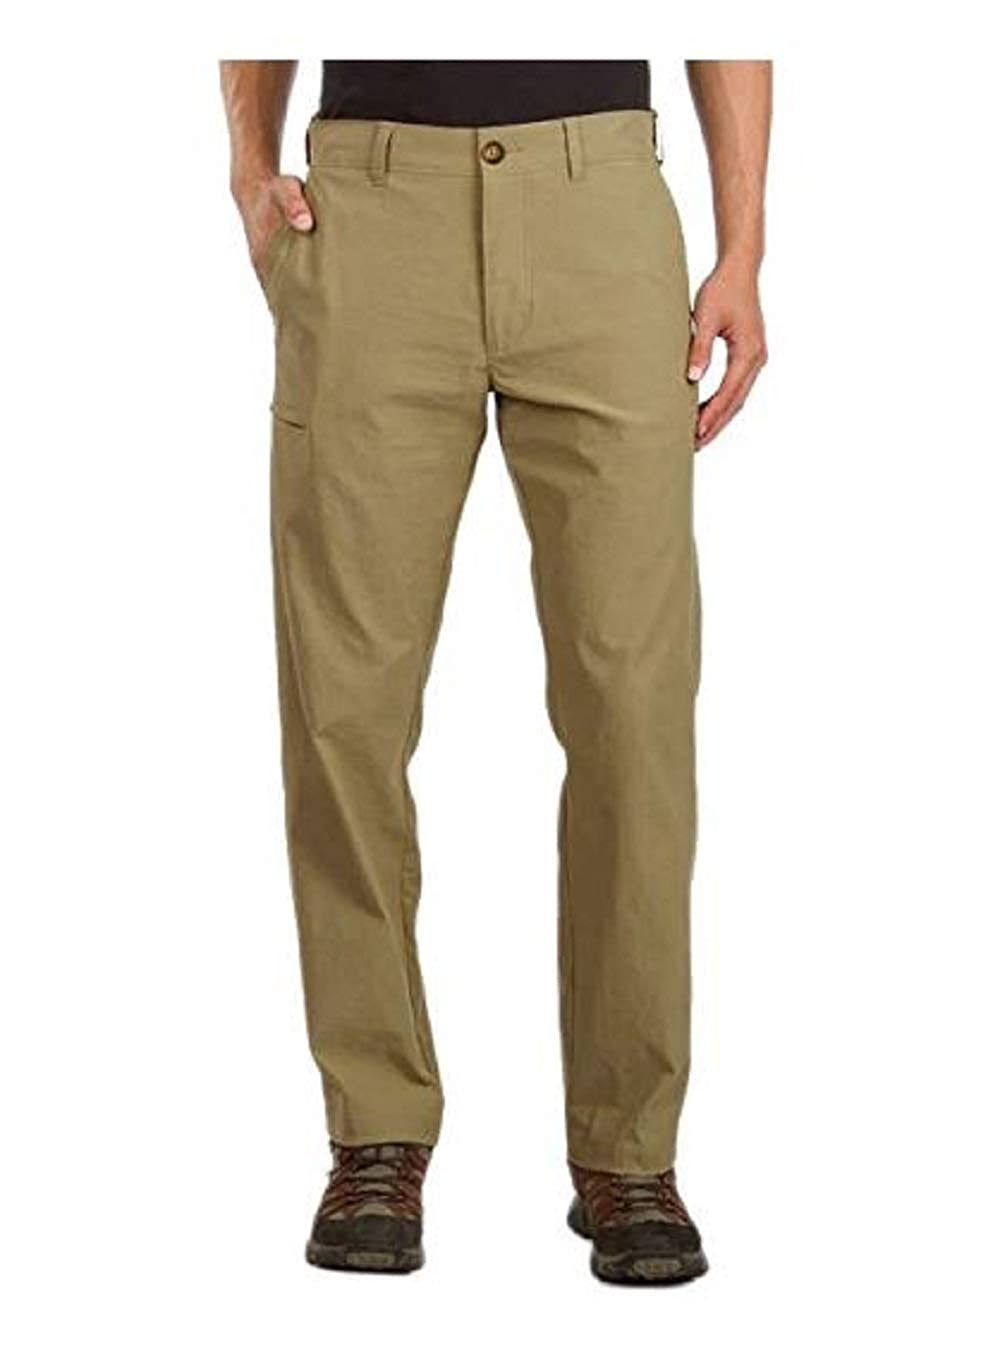 UB Tech by Union Bay Men's Classic Fit Comfort Waist Chino Pants Khaki